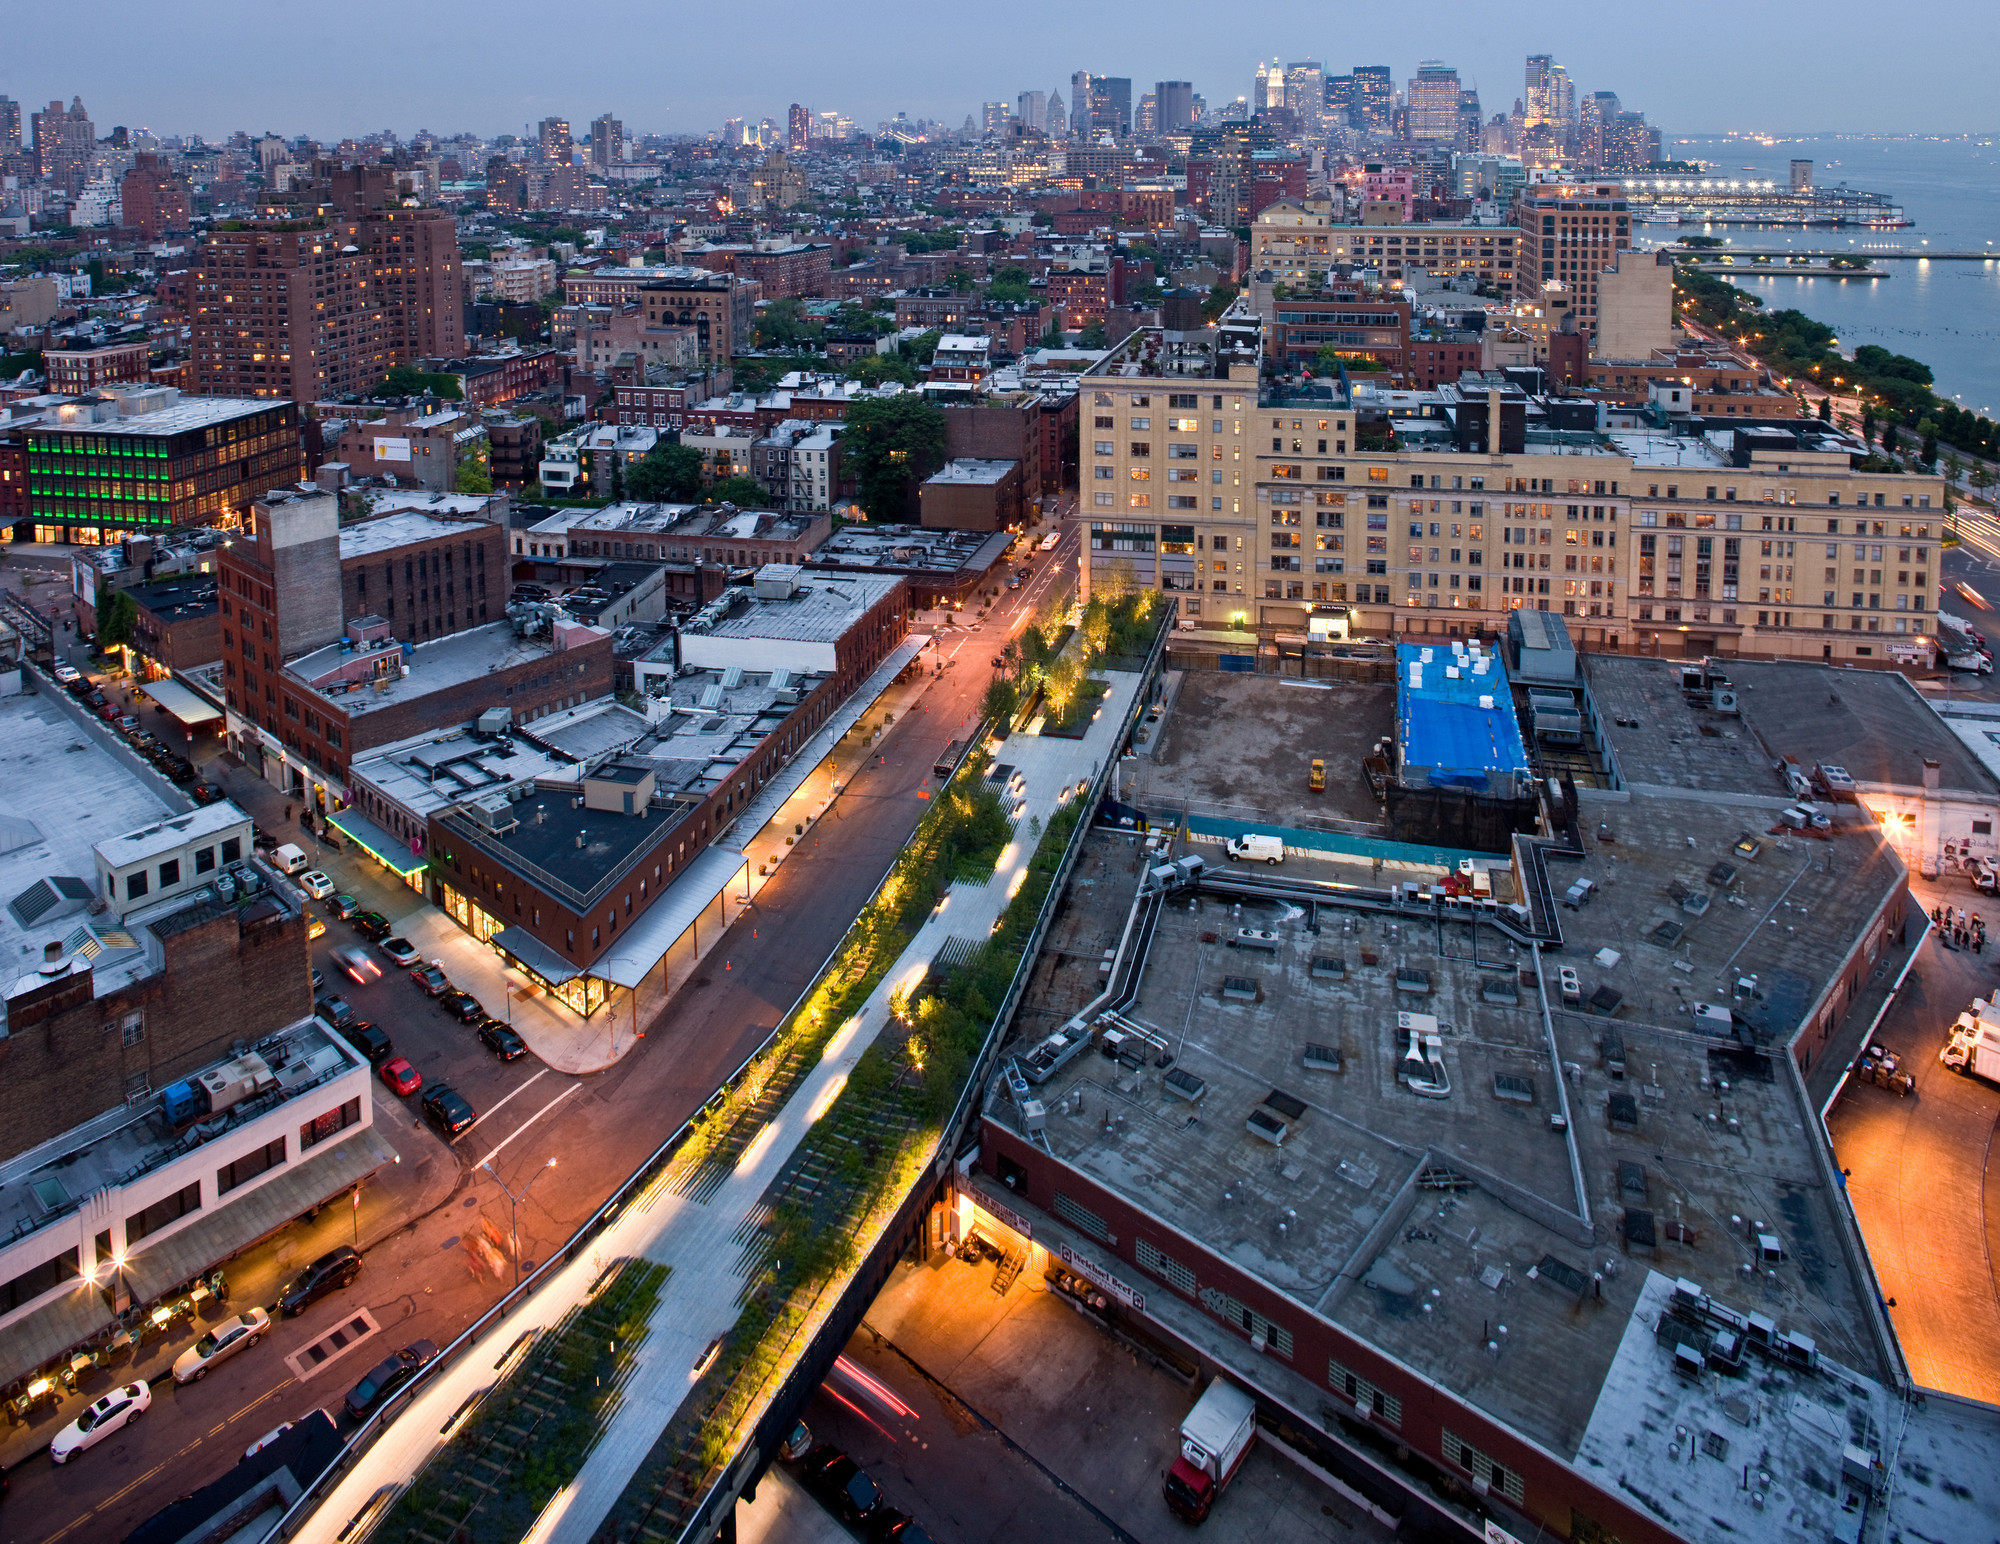 Gansevoort Woodland at Night, Aerial View from Gansevoort Street to West 13th Street, looking South. Image © Iwan Baan, 2009 (Section 1)